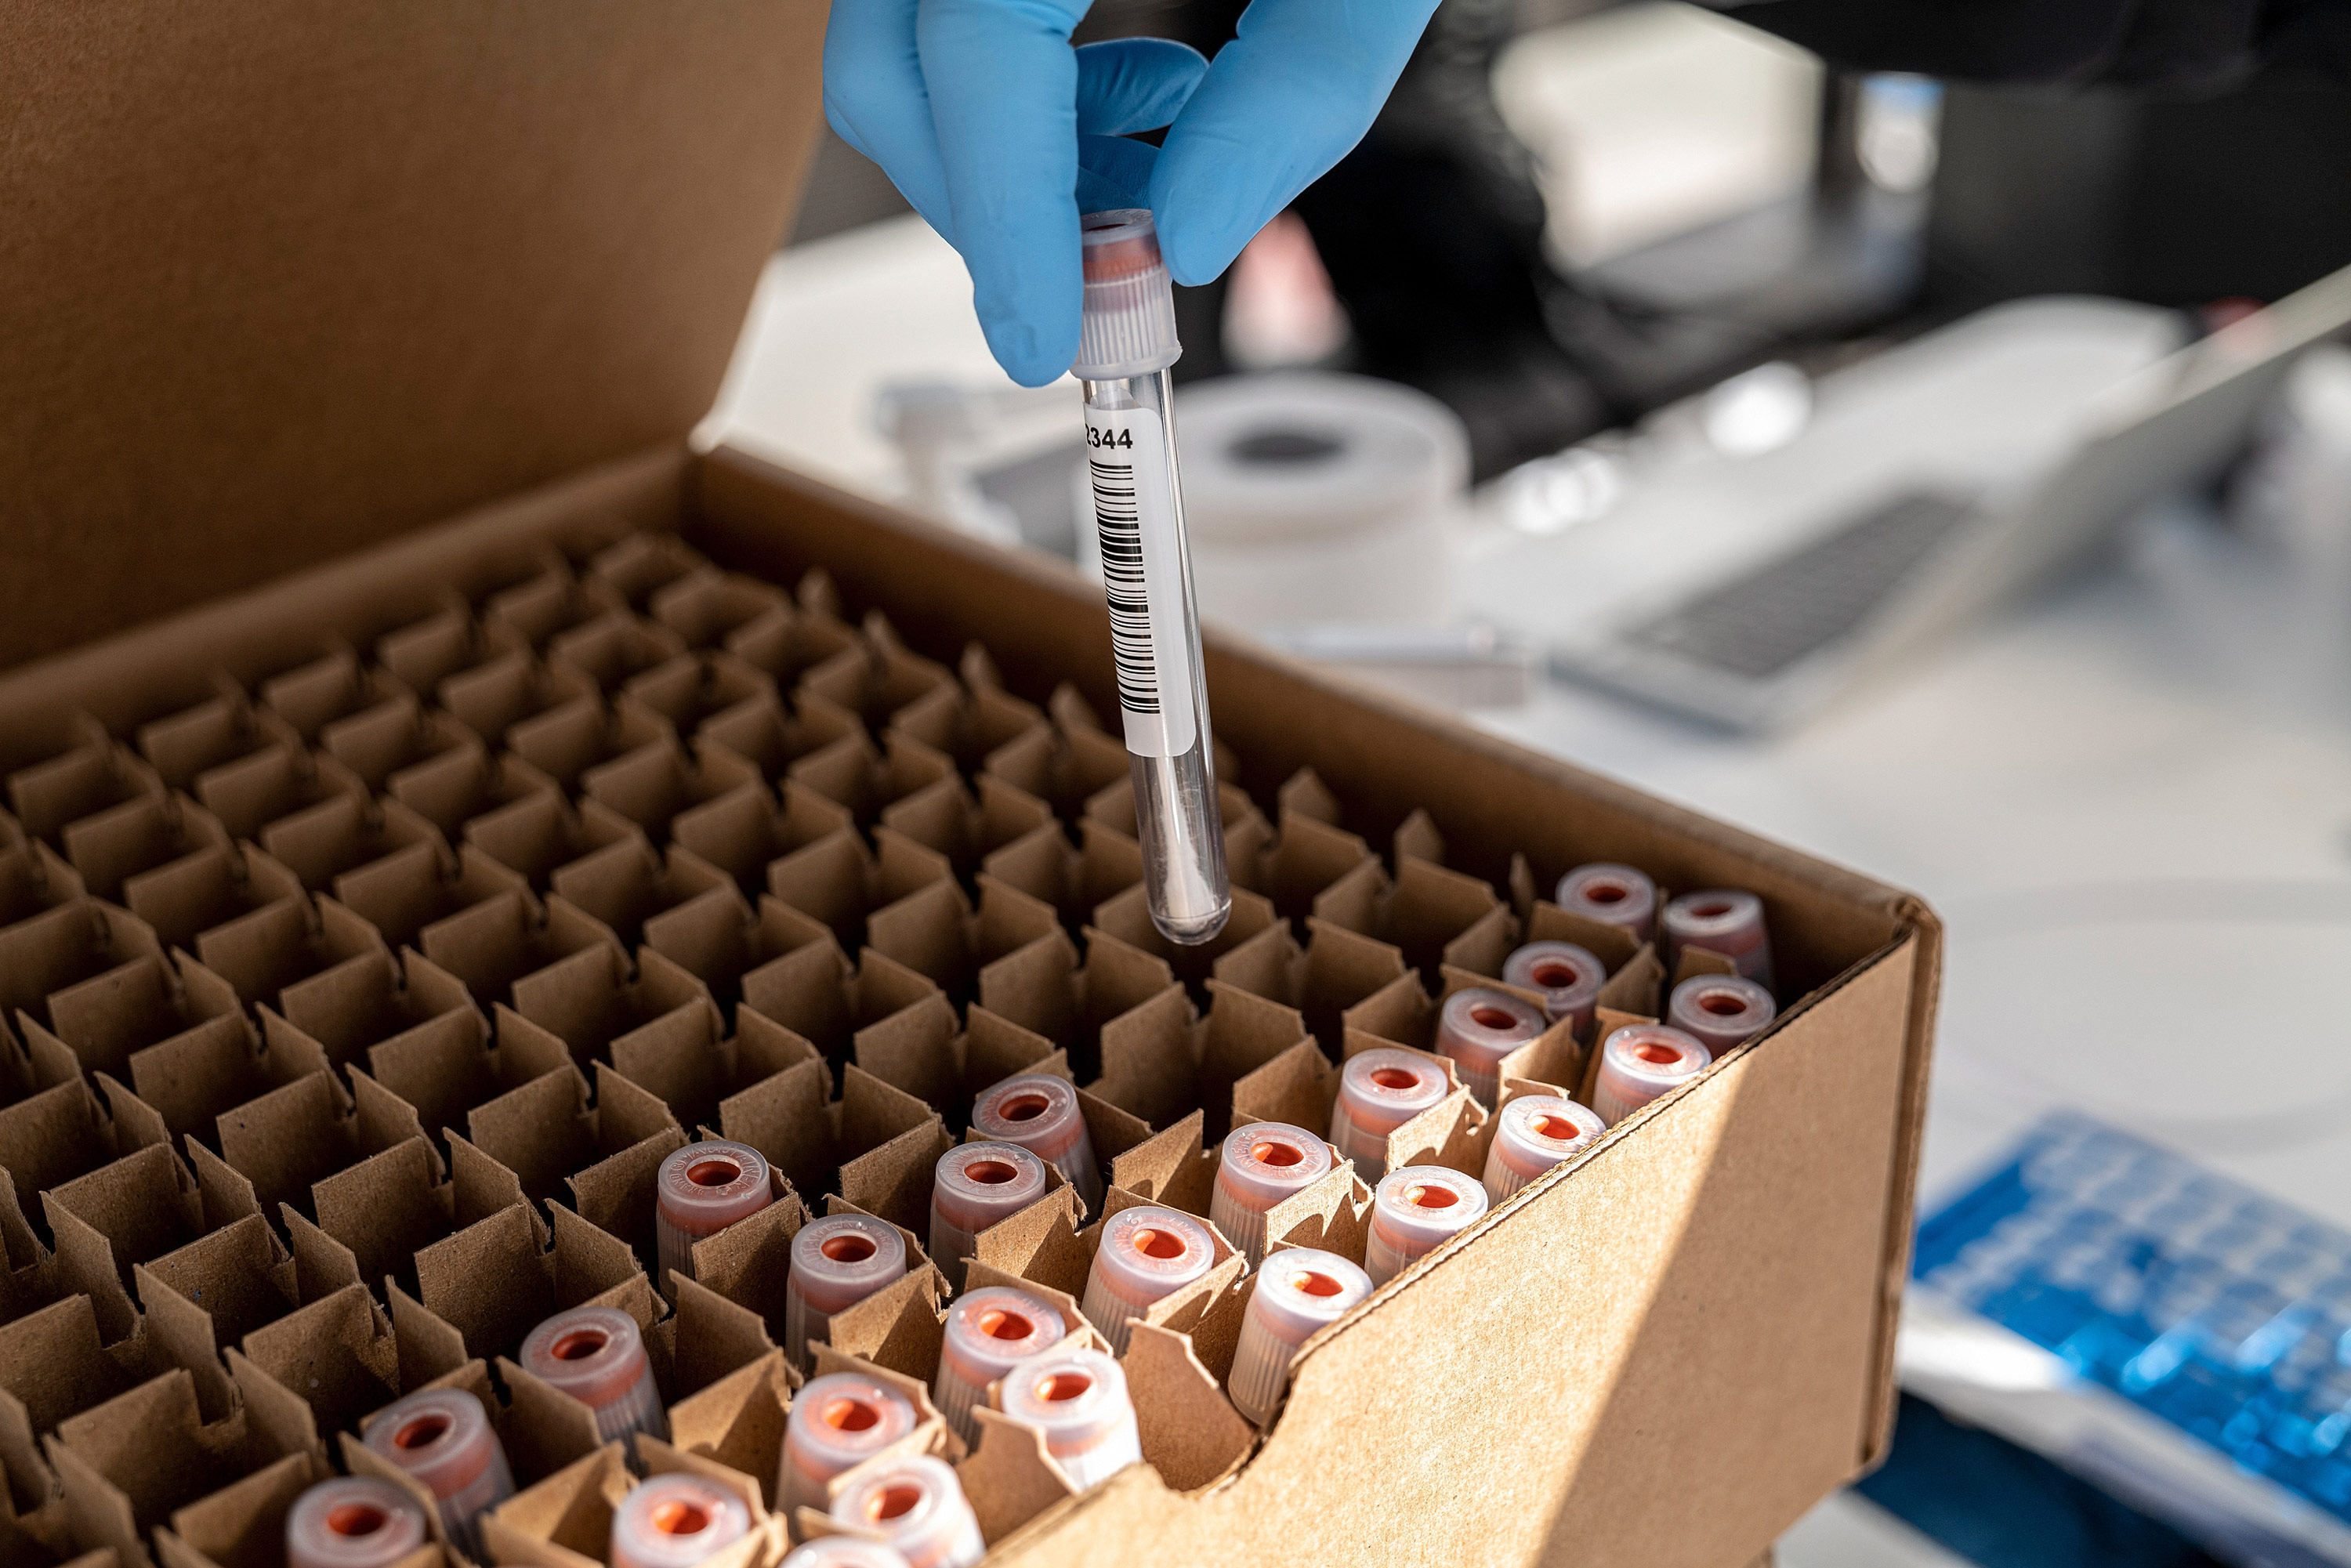 A healthcare worker places a vial containing a Covid-19 test swab into a box at a testing site in San Francisco, California, on January 9.